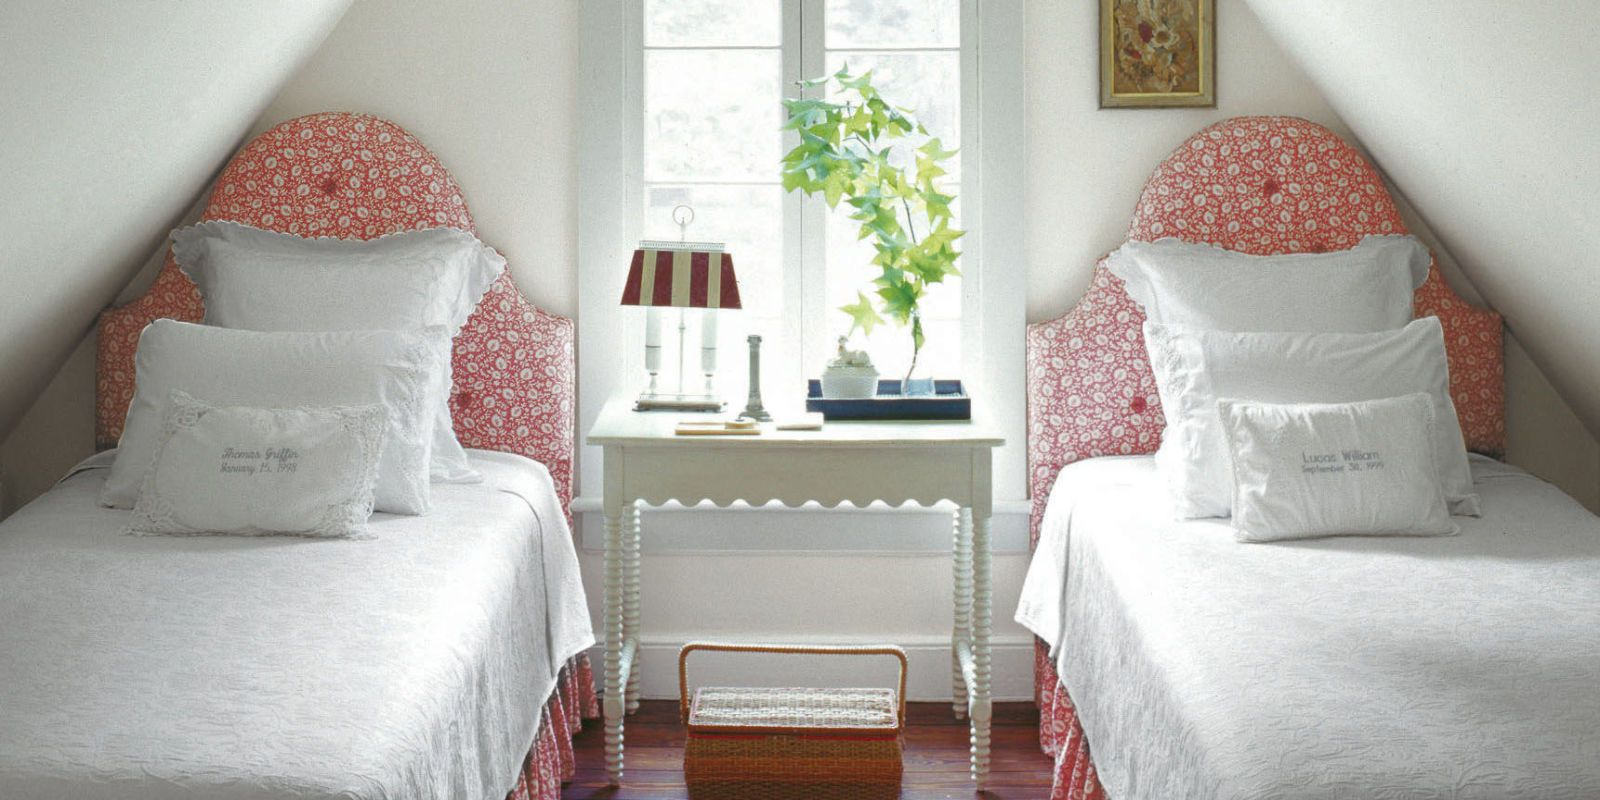 Beau Small Bedroom Ideas